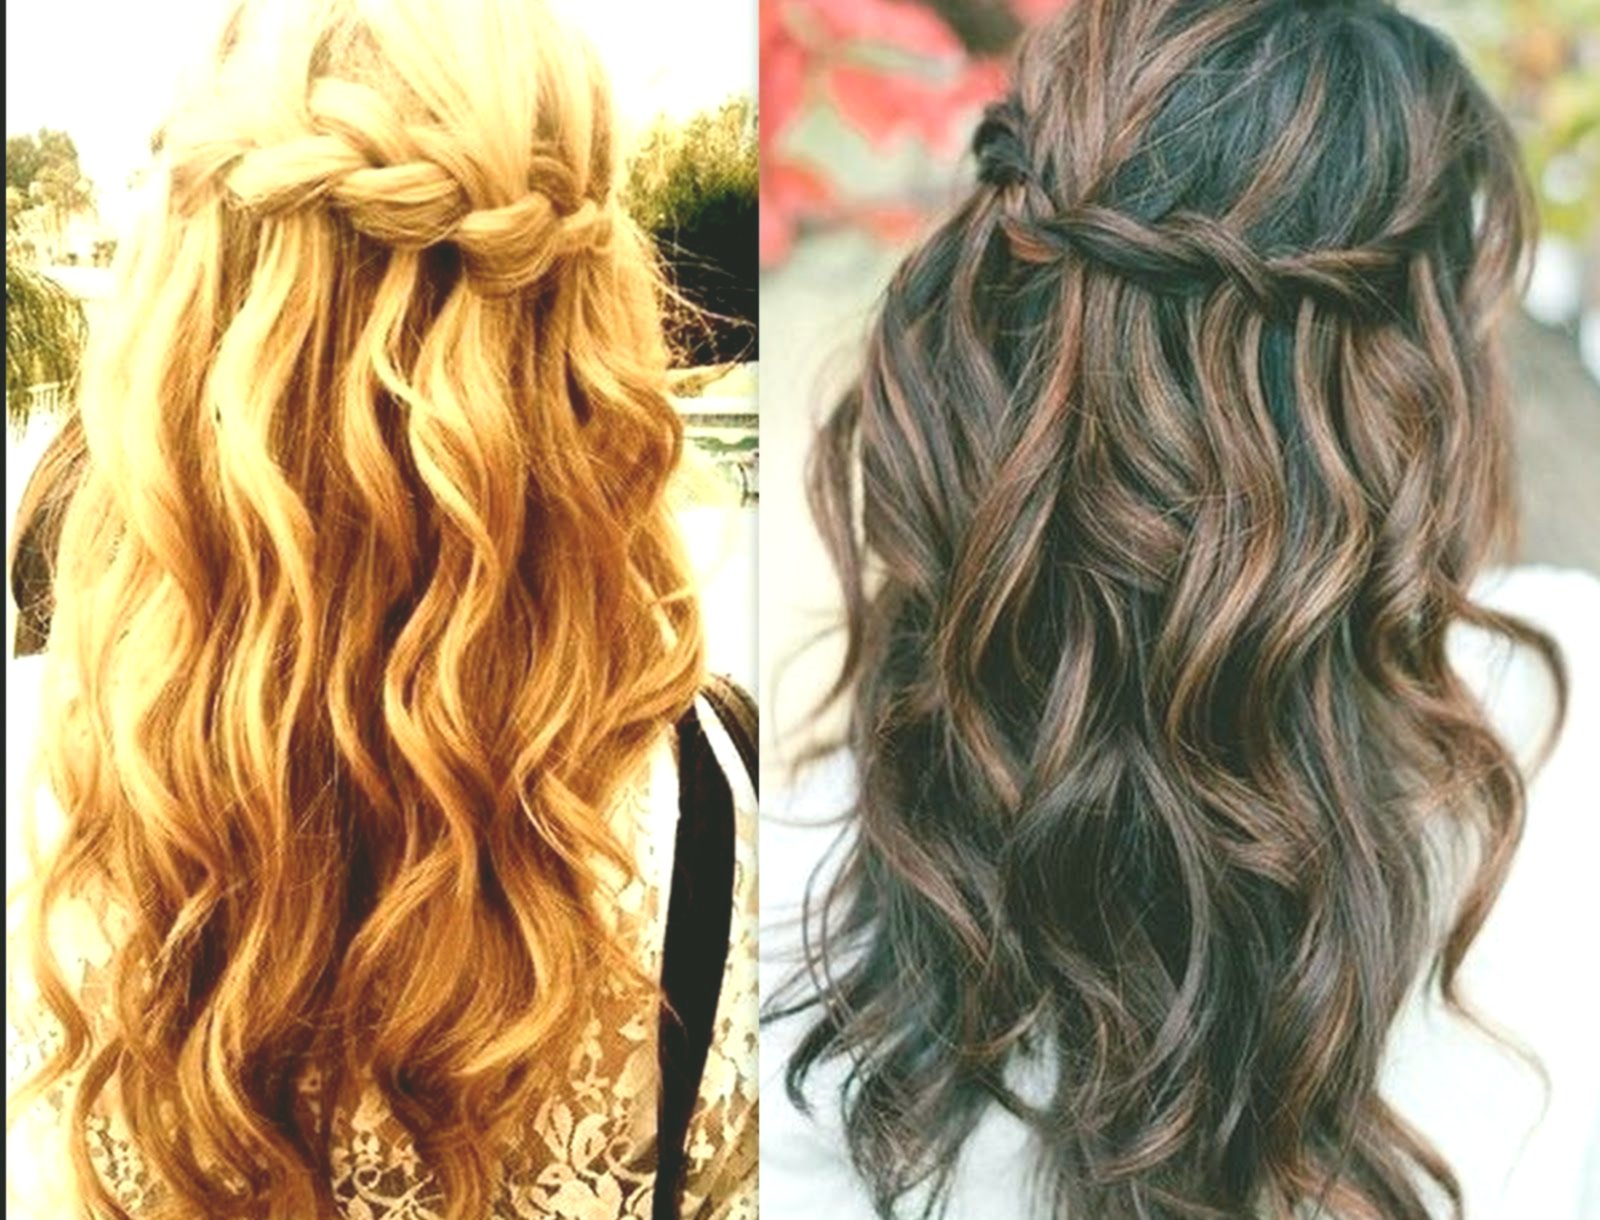 beautiful chic hairstyles background-Beautiful chic hairstyles architecture